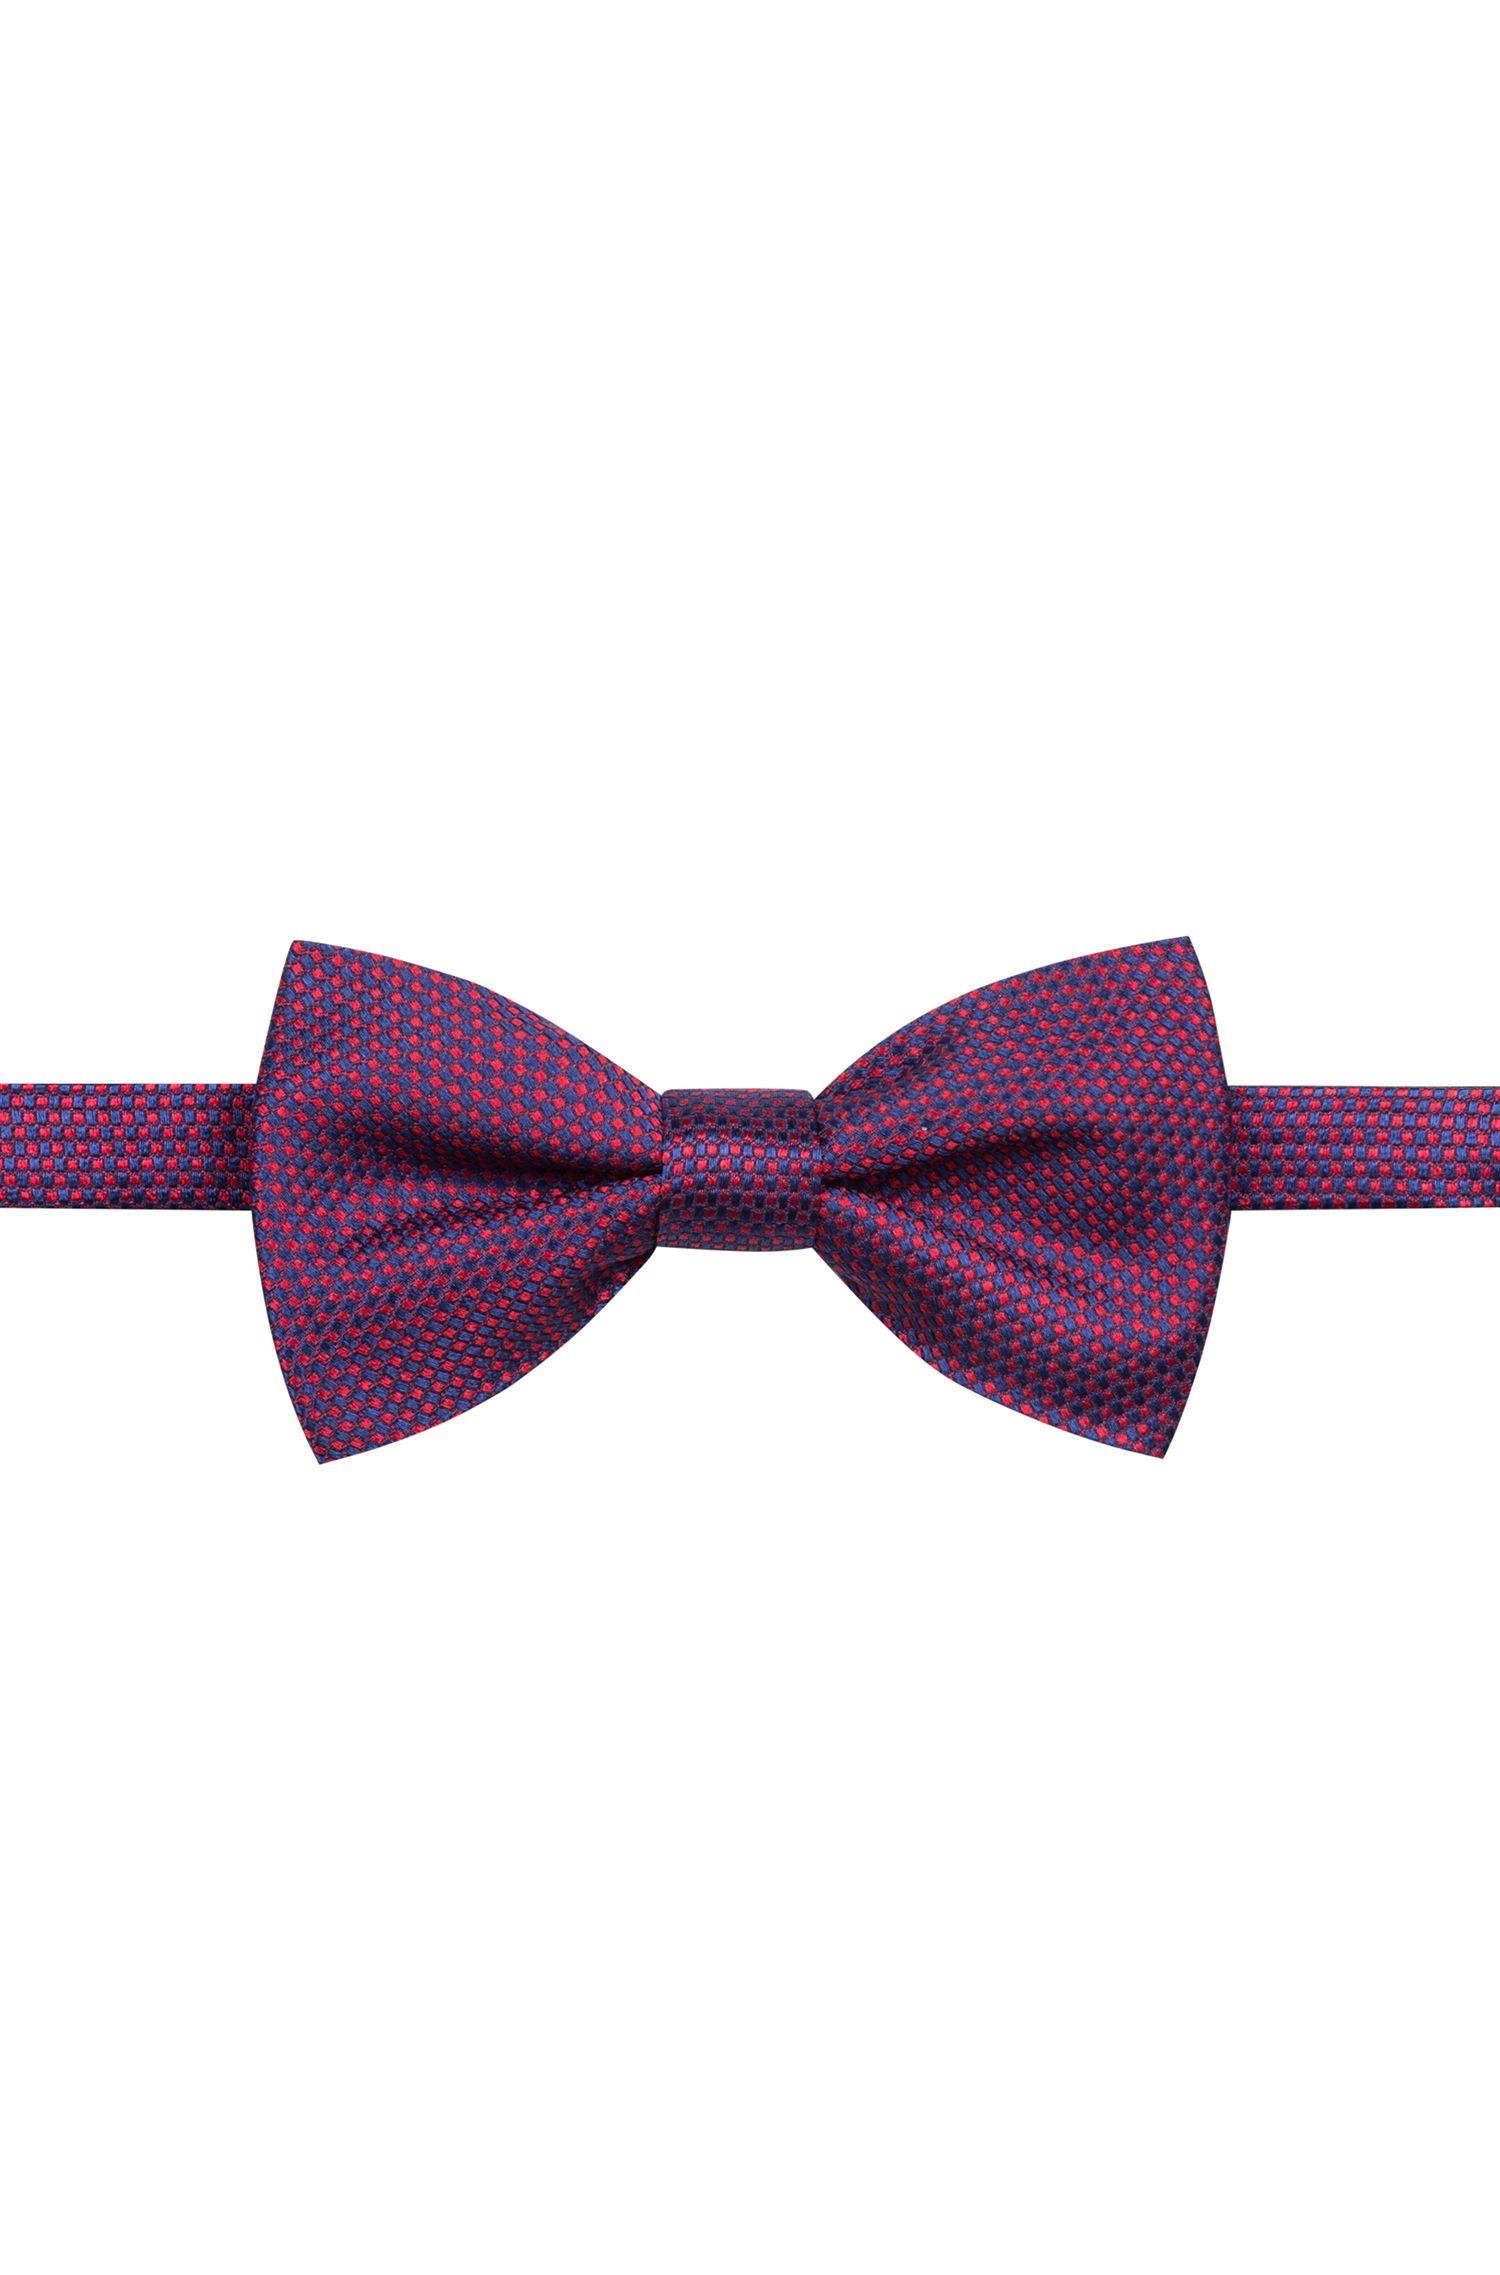 Micro-patterned bow tie in bi-coloured silk jacquard, Patterned